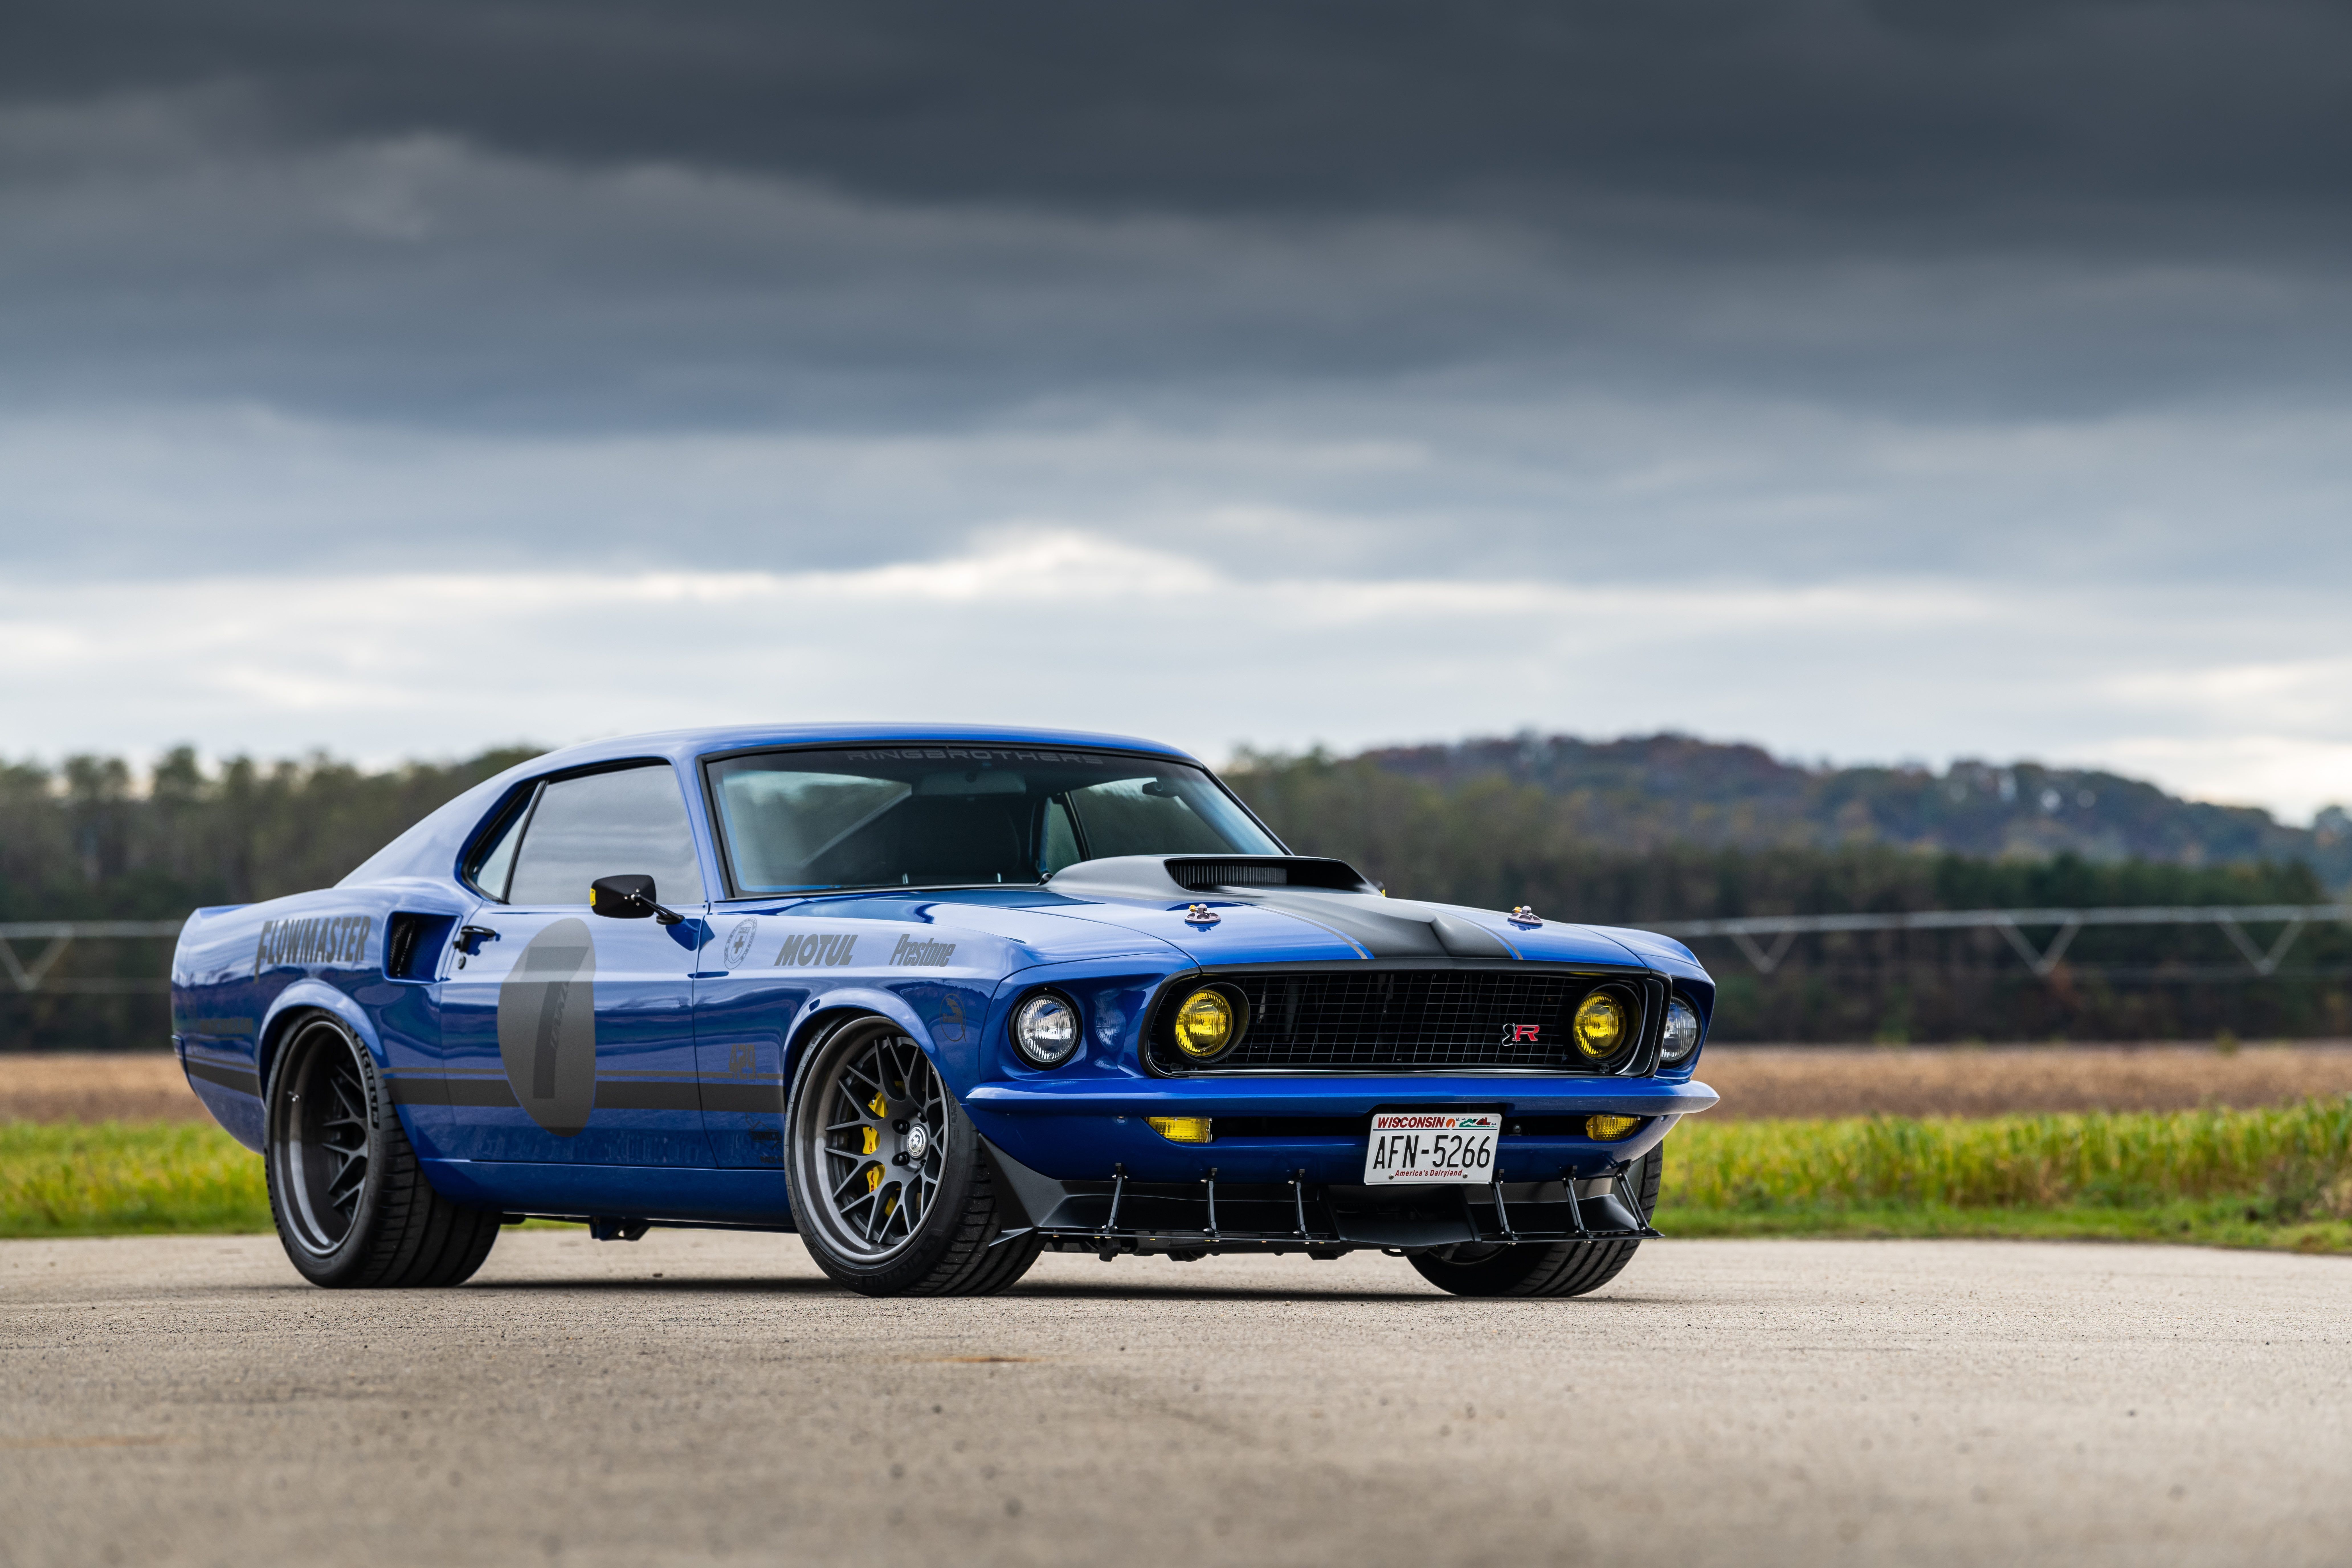 Ford Road 1969 Lights Ford Mustang Muscle Car Mach 1 Classic Car Sports Car Hre Wheels Ford Mustang Mach 1 By Rin Mustang Mach 1 Mach 1 Muscle Cars Mustang